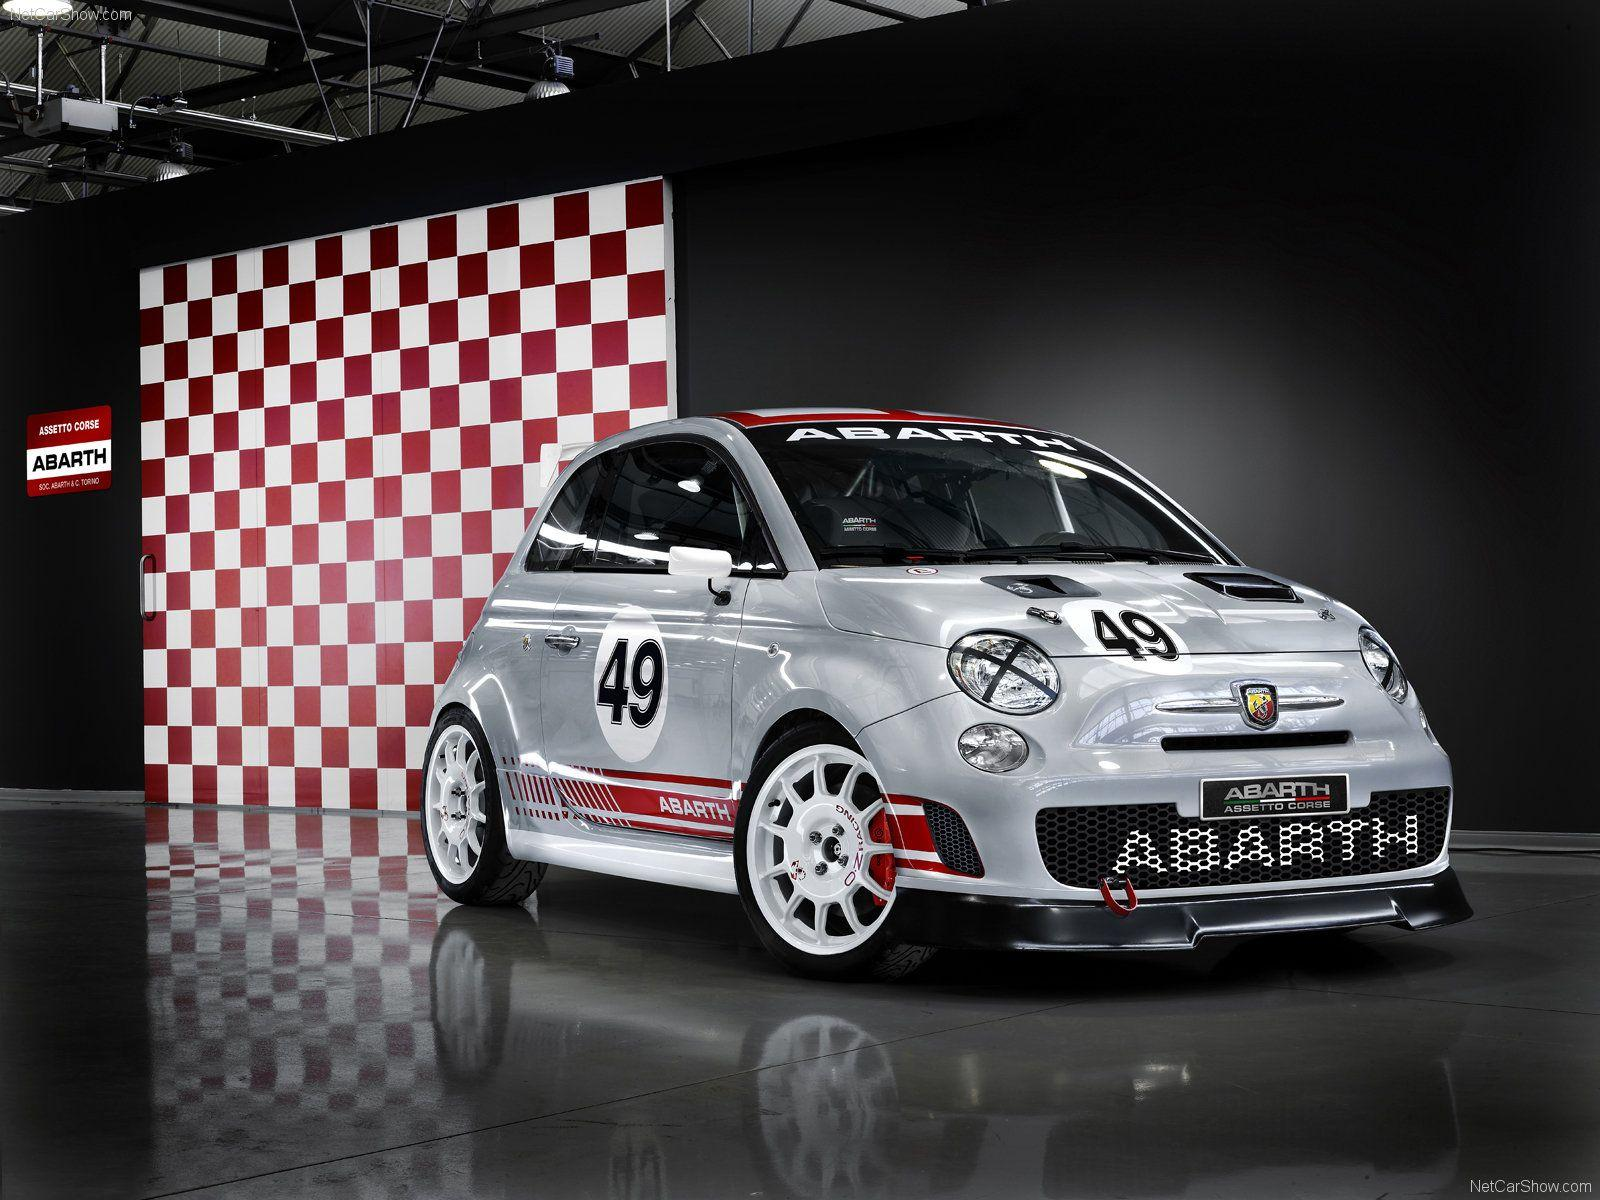 Fiat 500 Wallpapers, High Quality Desktop Wallpapers (36+) ...